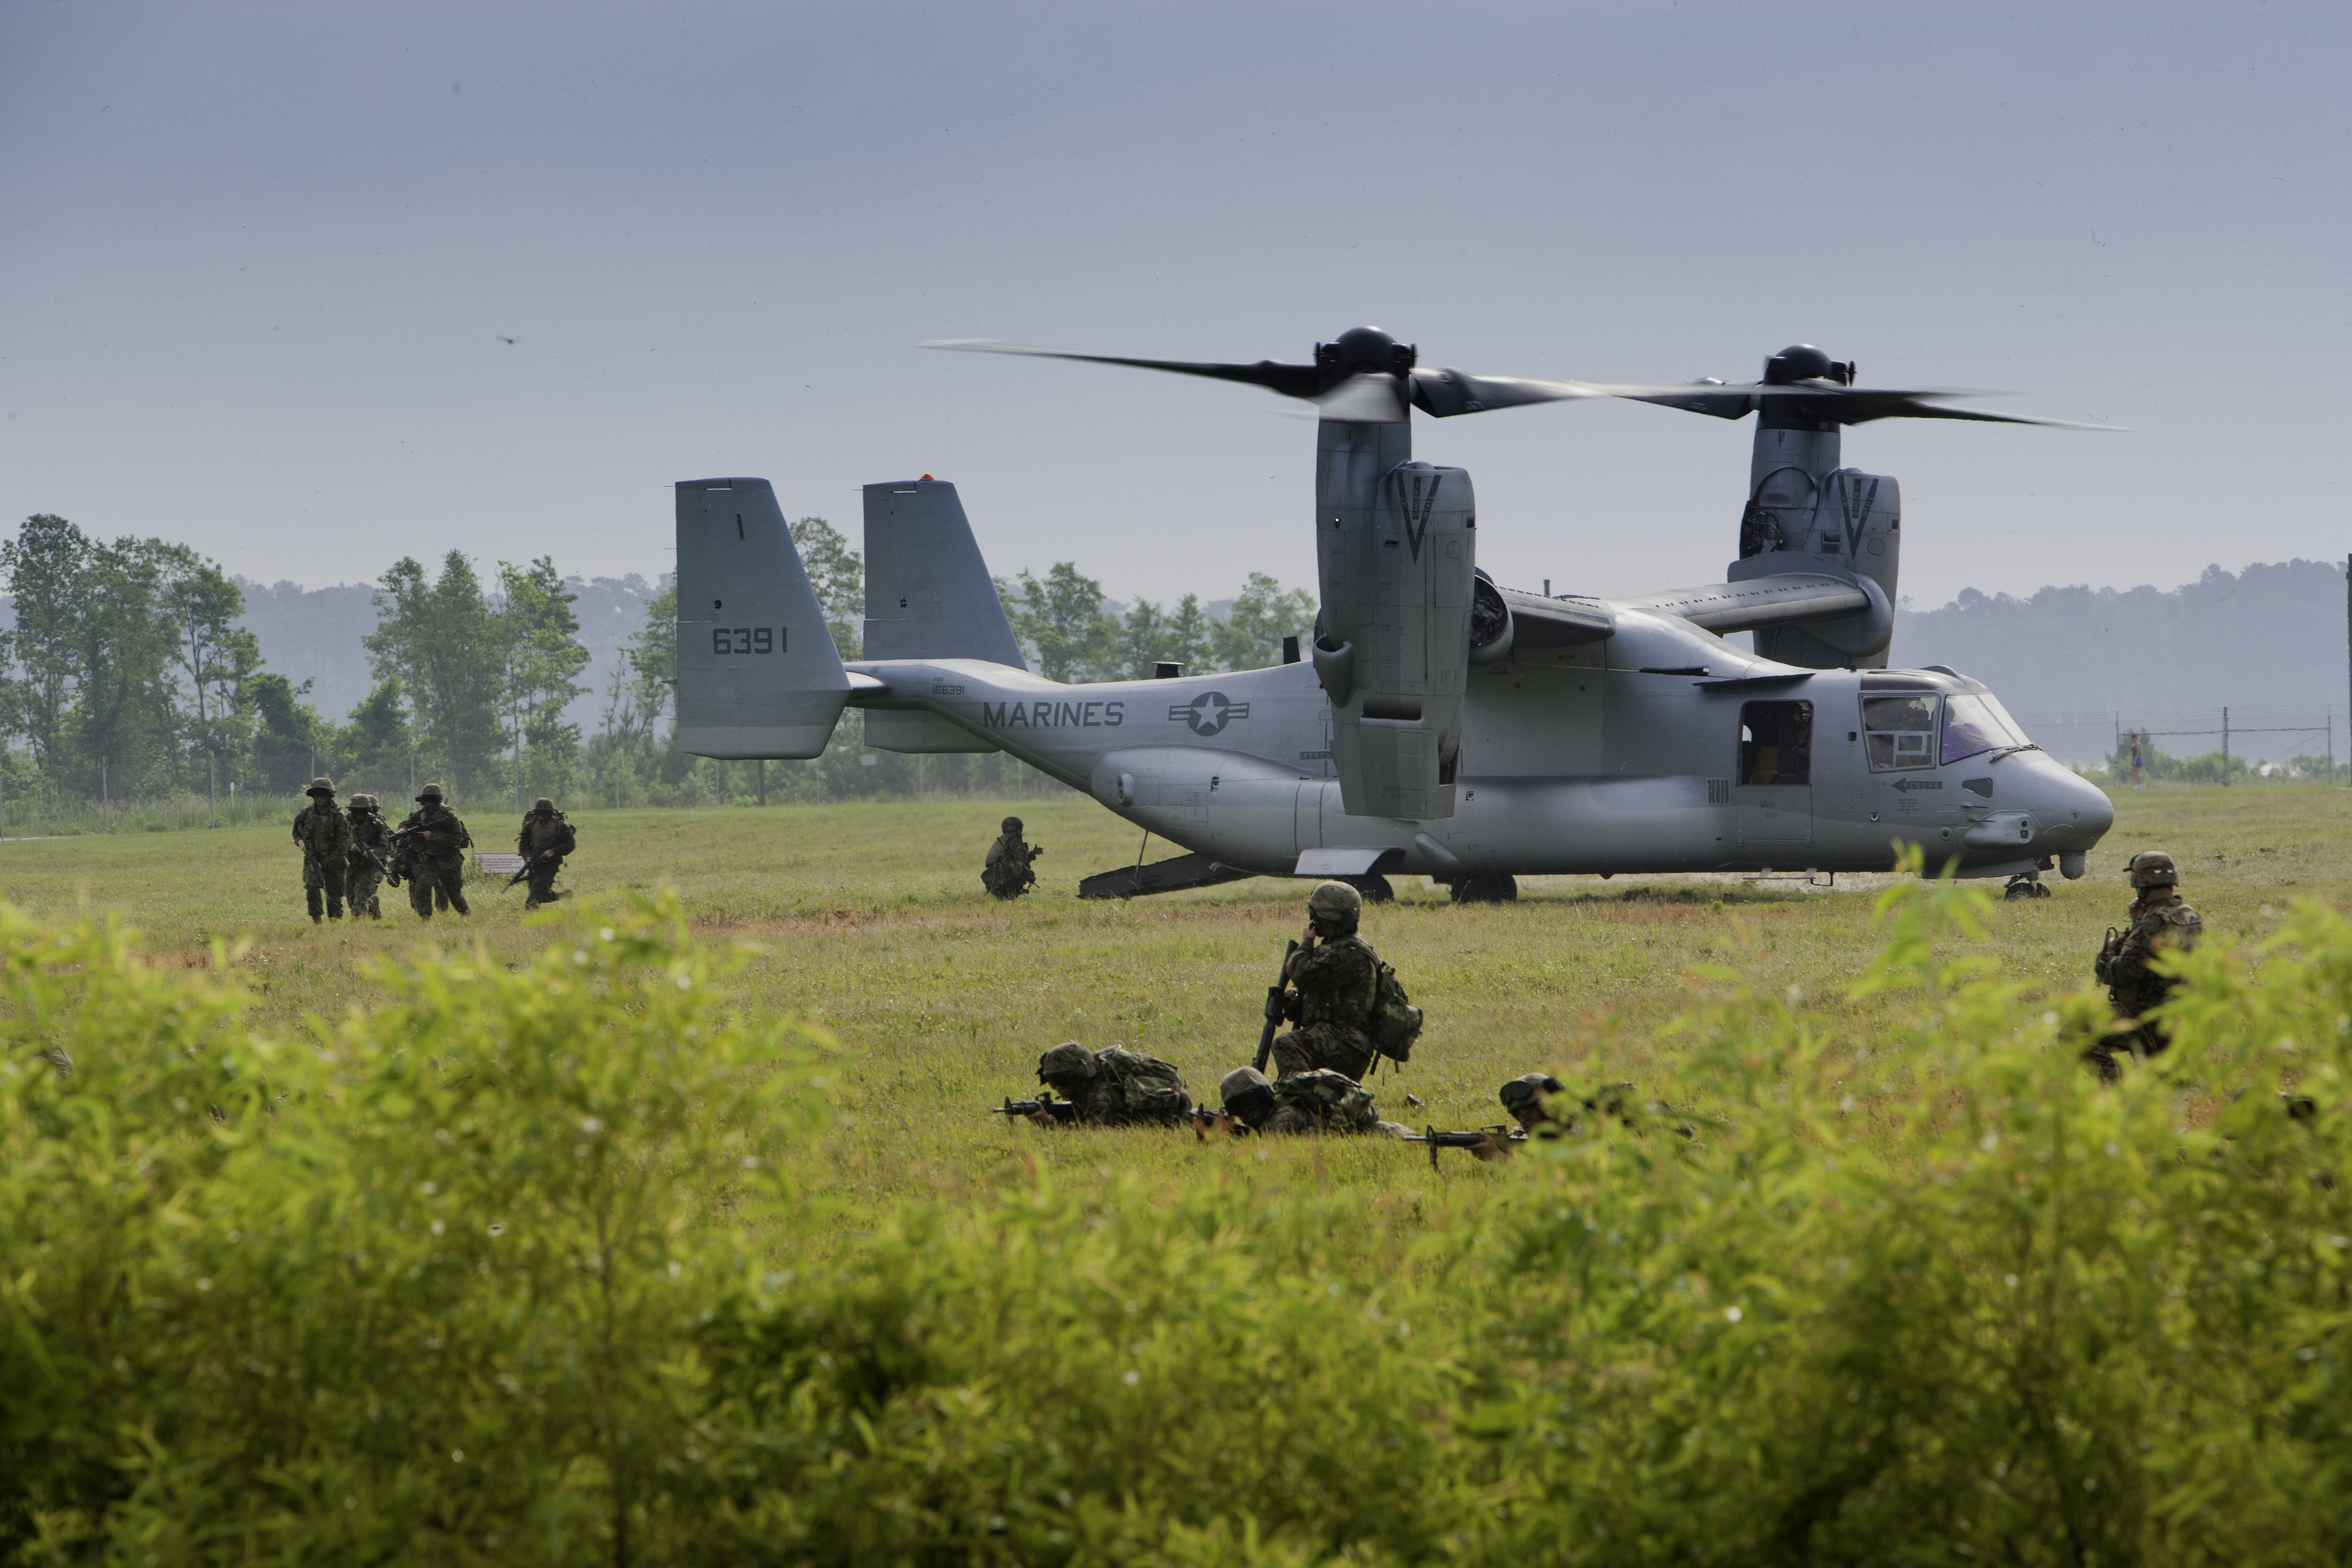 SGA2012: USMC receives first Block C-configured MV-22 Osprey